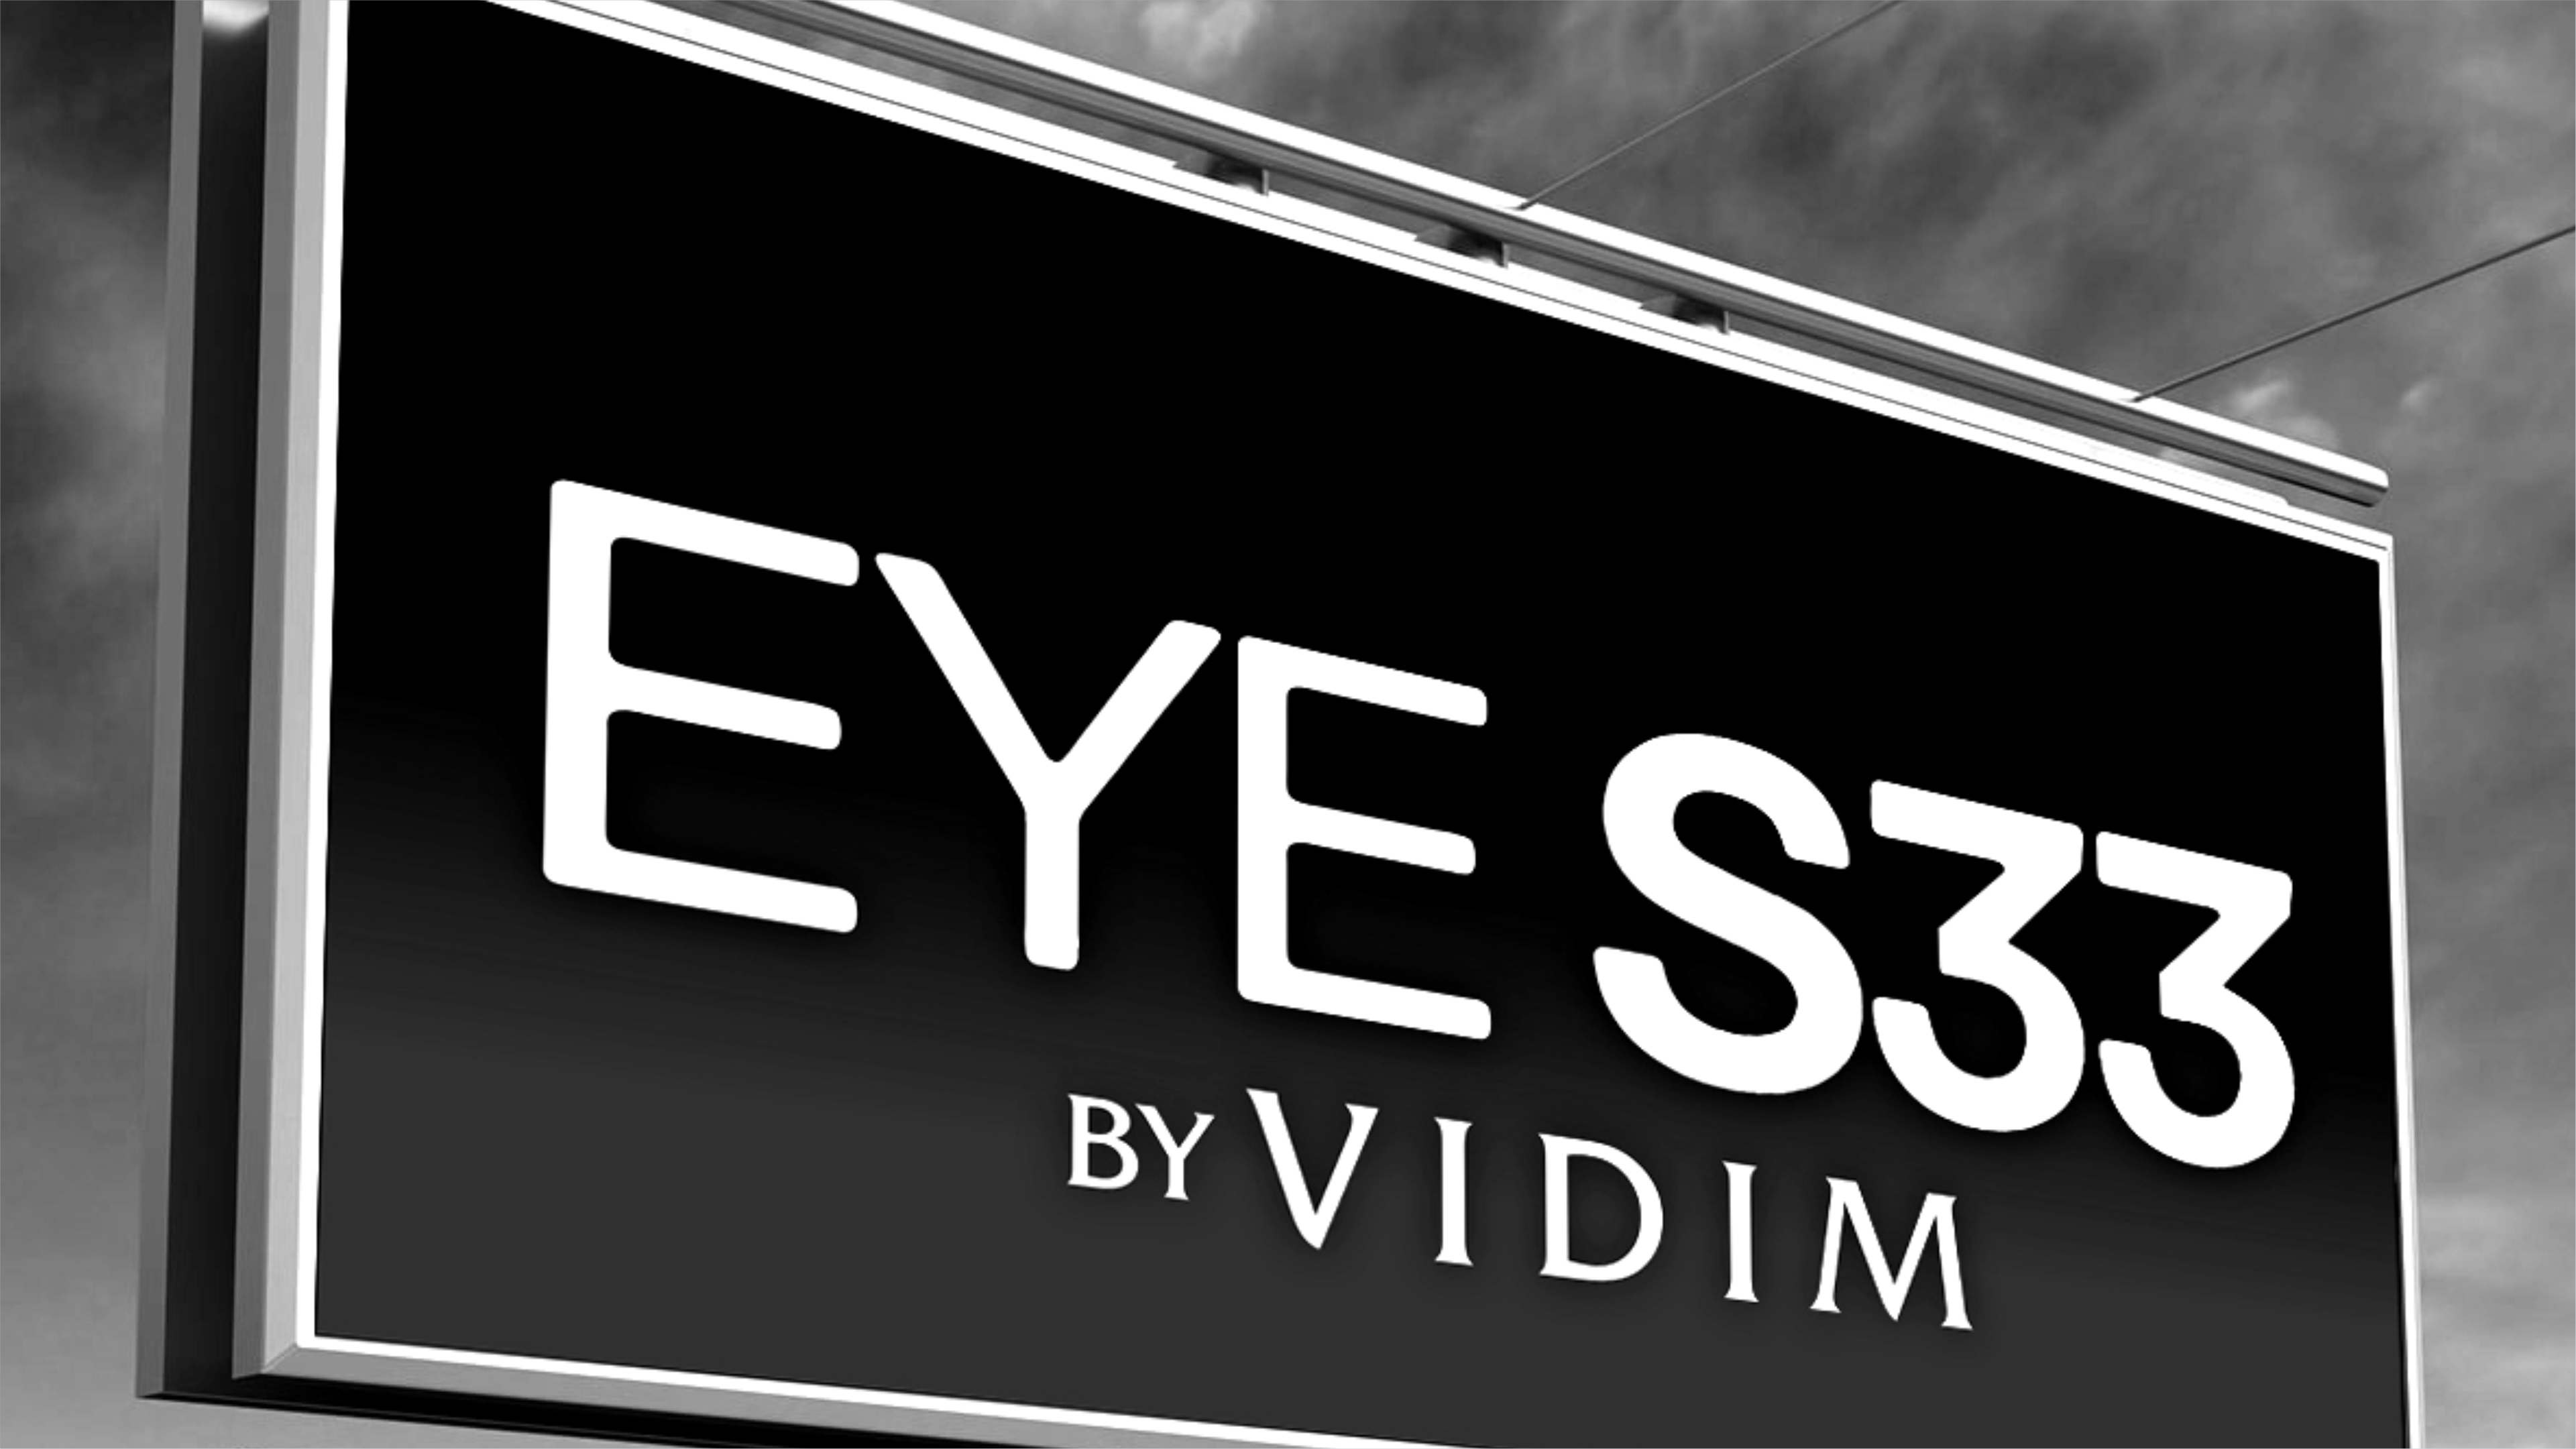 Vidim Launches Eye S33, an Exclusive Brand Sunglasses Inspired by Eye Laser Surgery